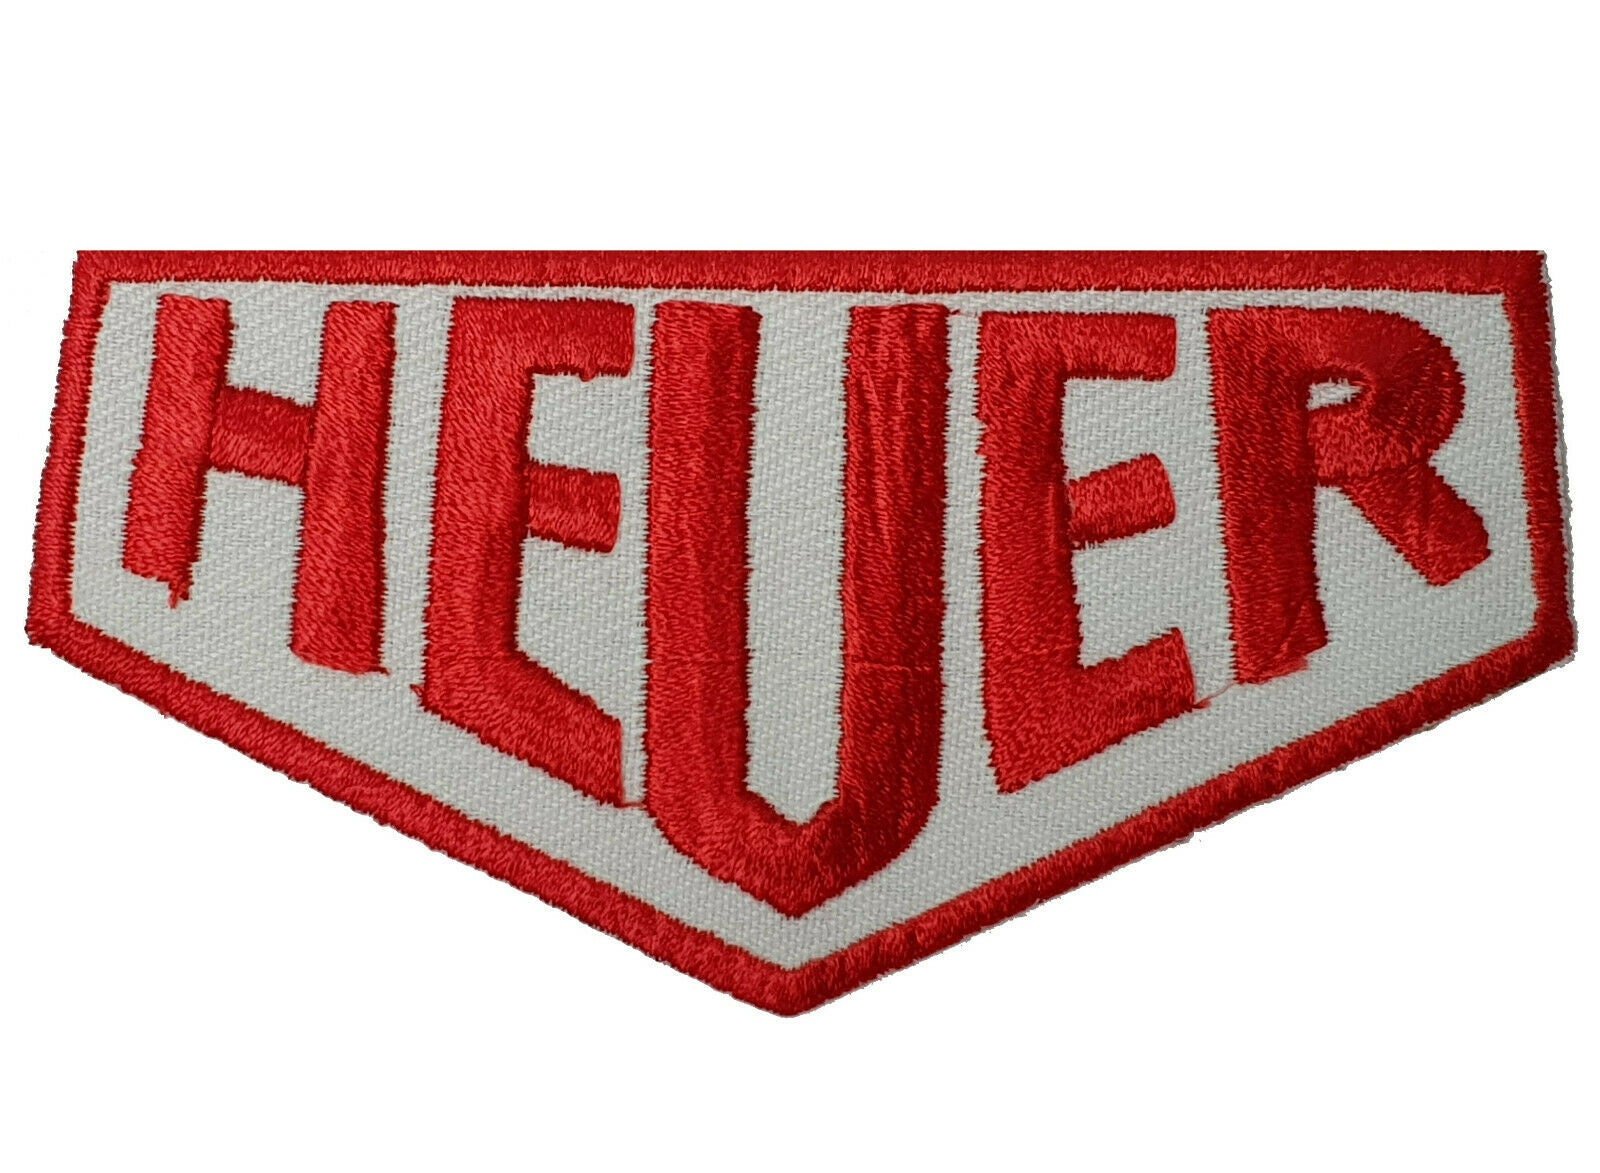 HEUER  White /& Red Racing Iron// Sew-on Embroidered Patch// Logo//Badge